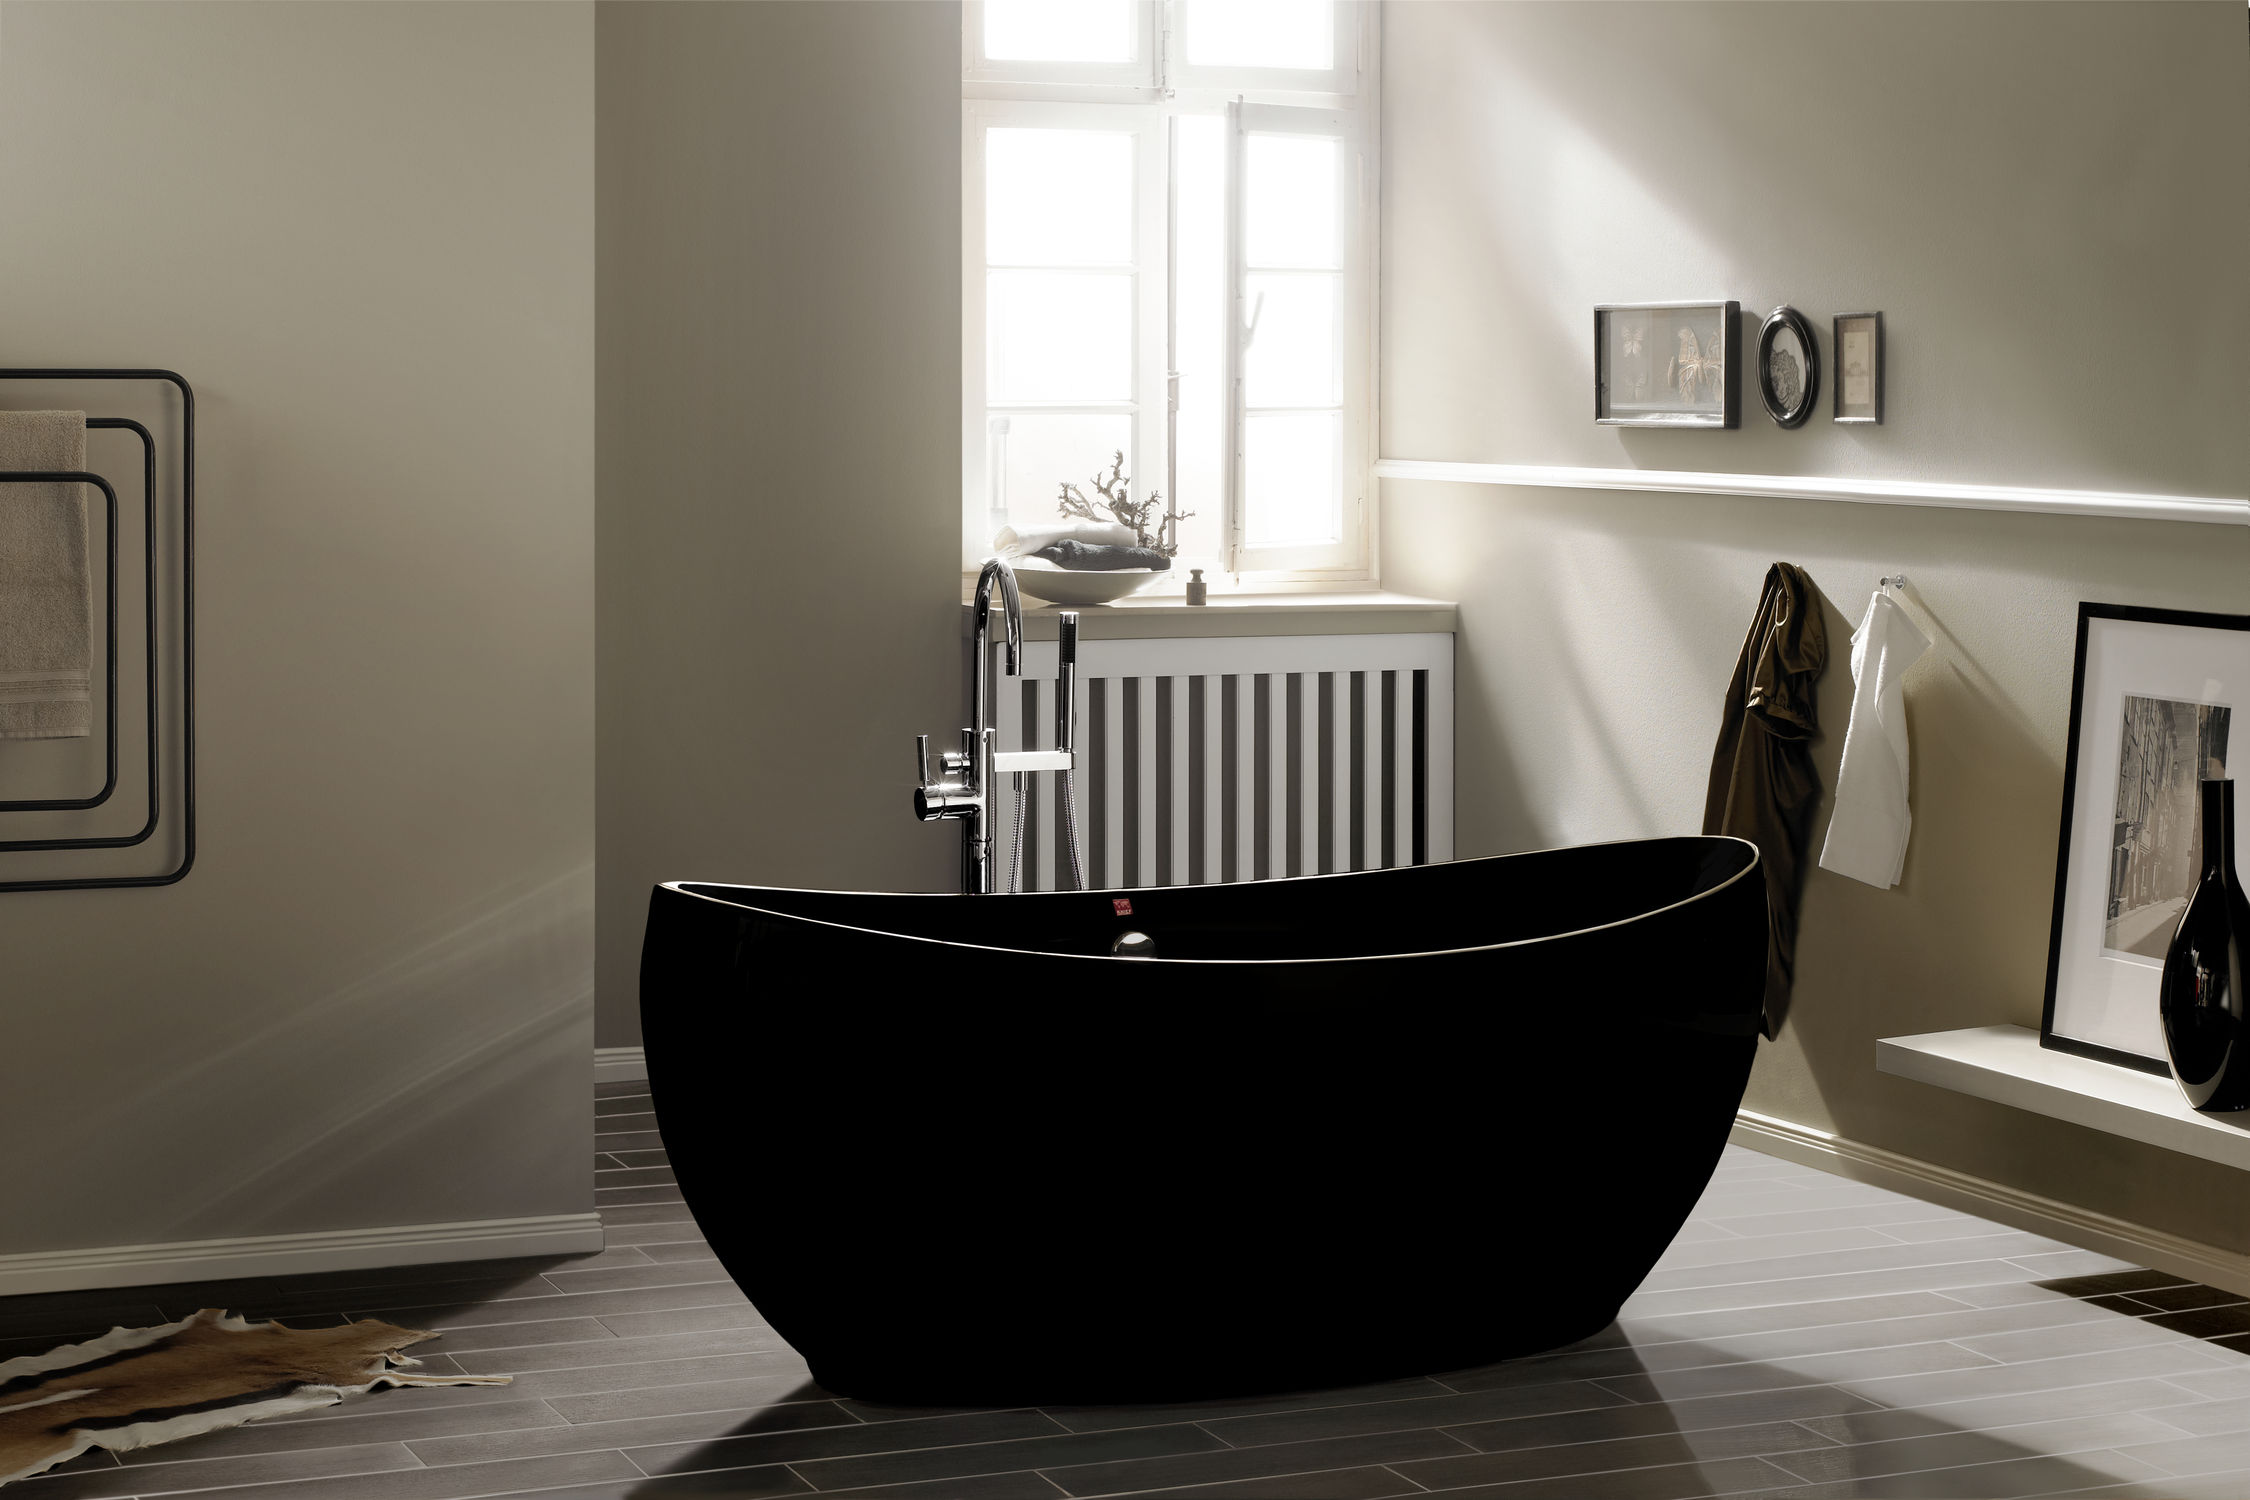 amazing australianwild architecture white glass nice small black bathtub org for design with l bathroom bathtubs